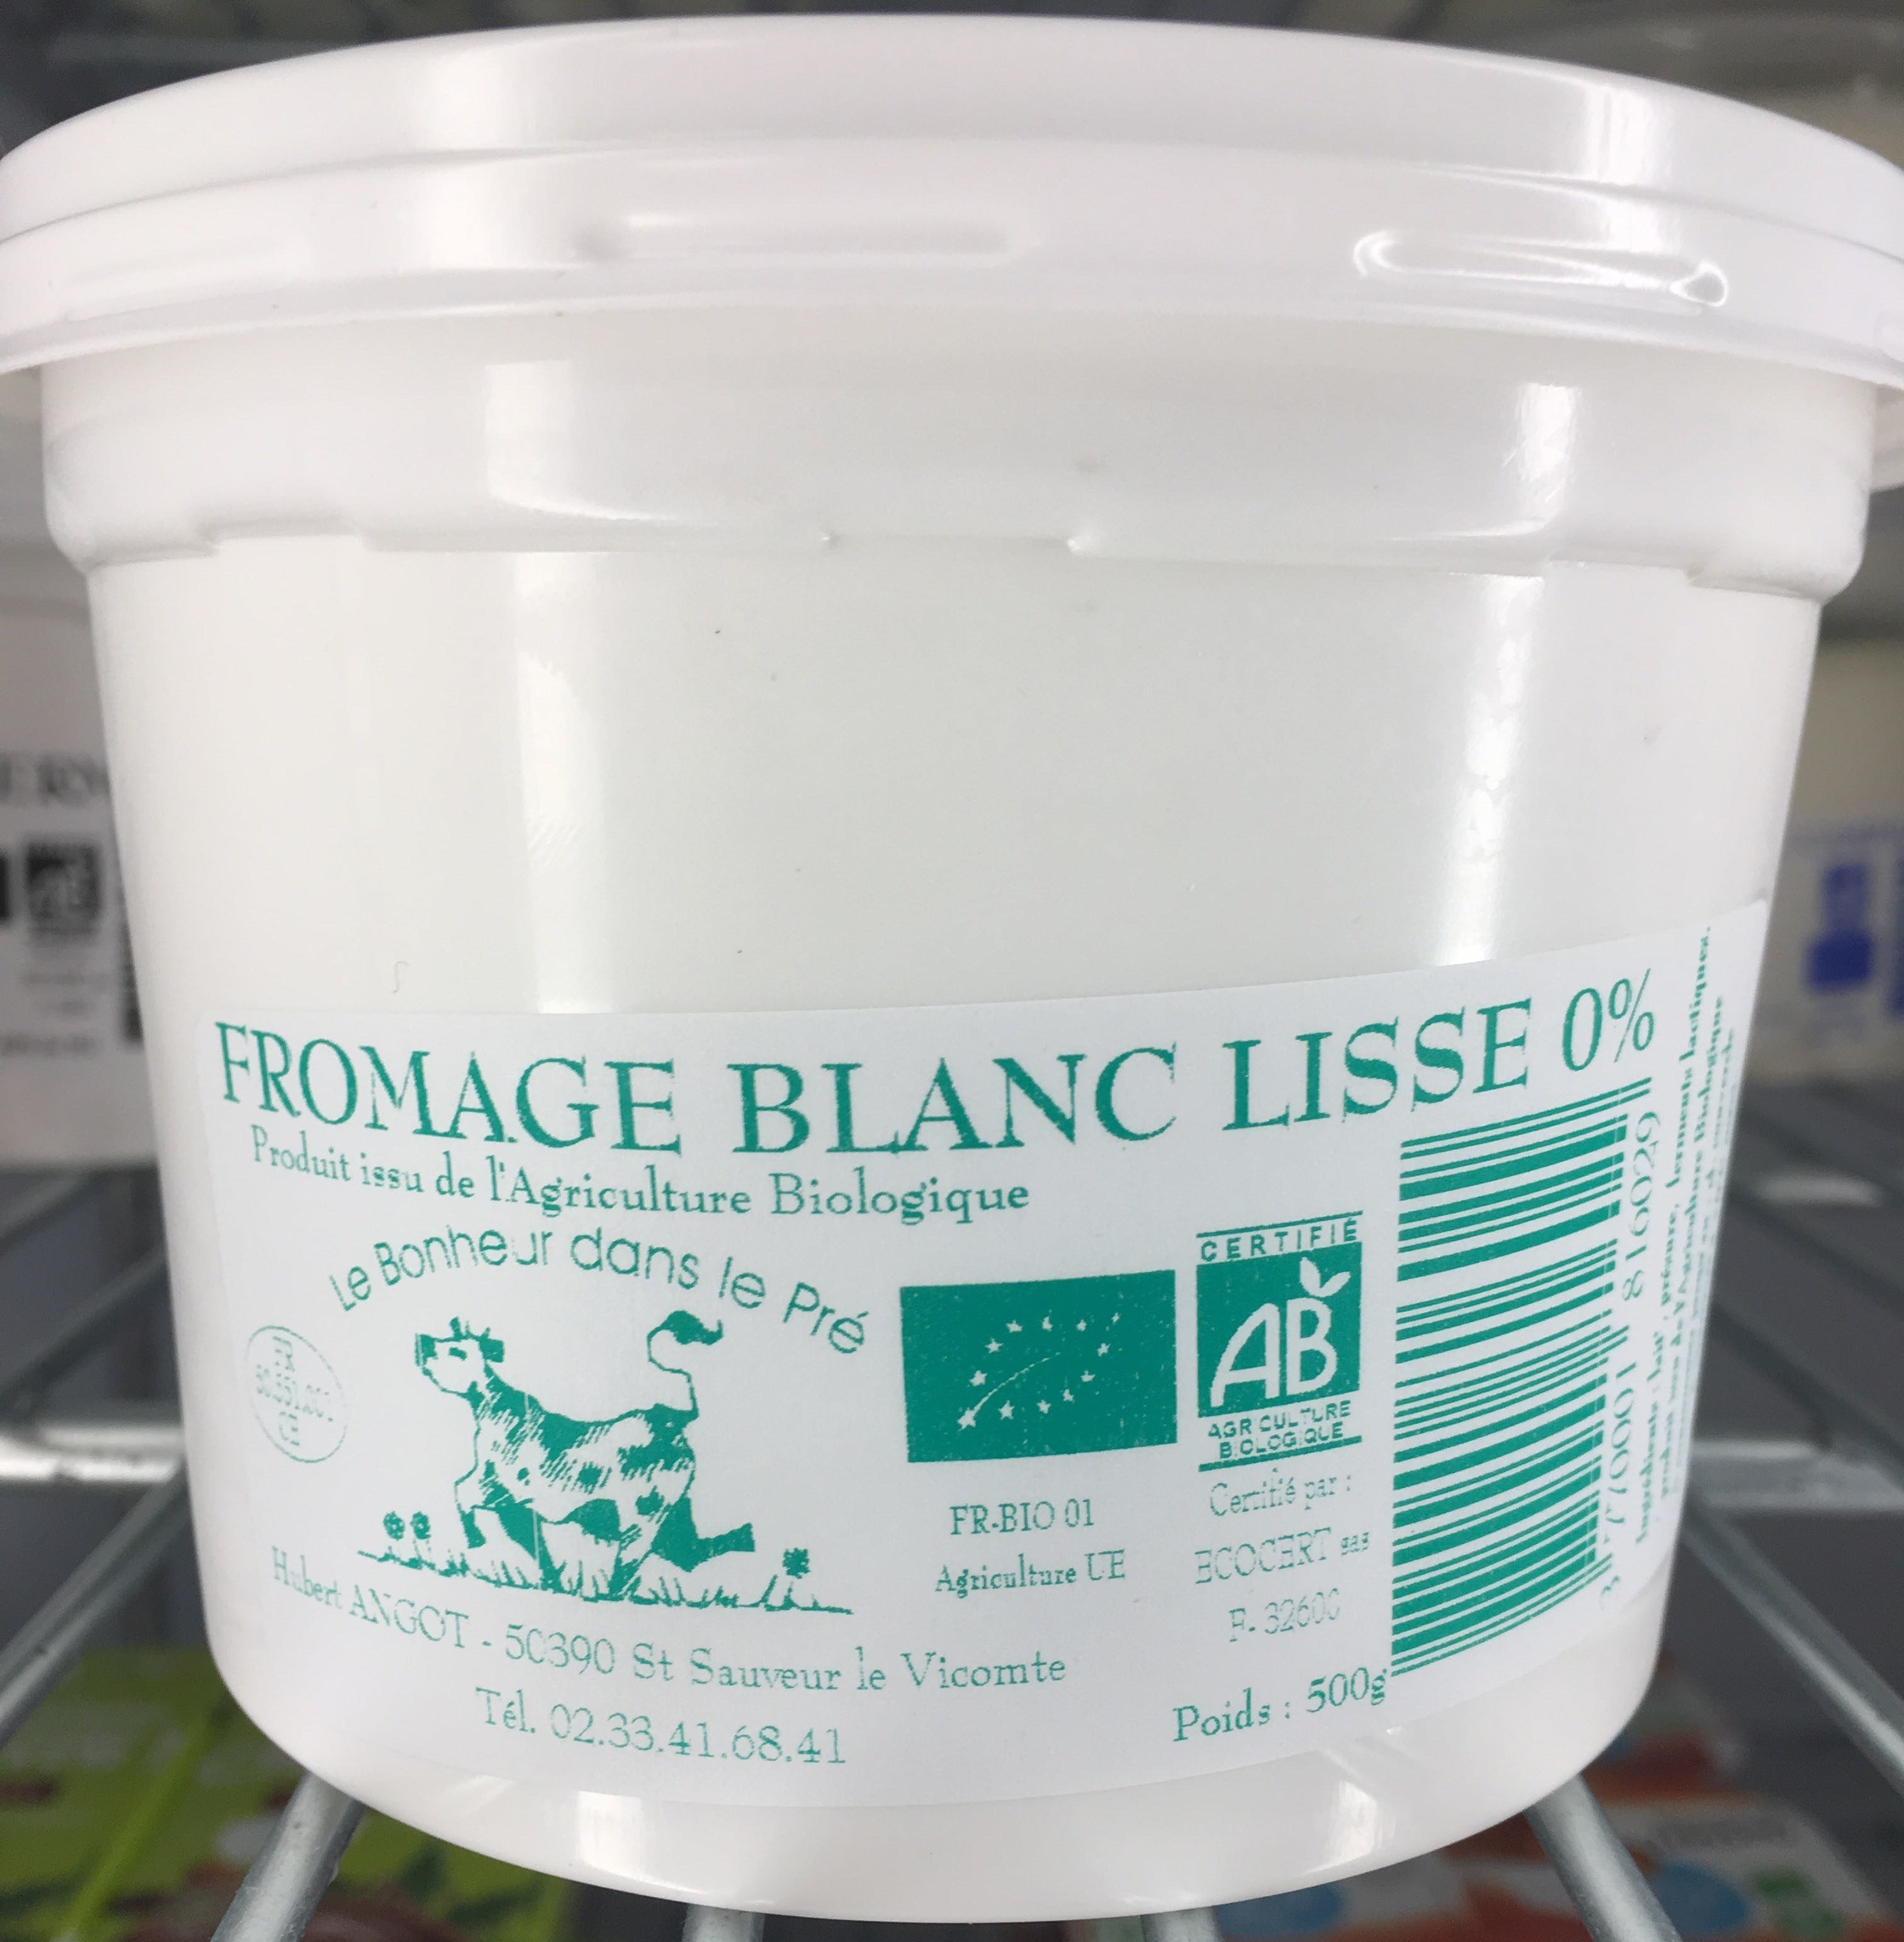 Fromage blanc lisse 0% - Product - fr